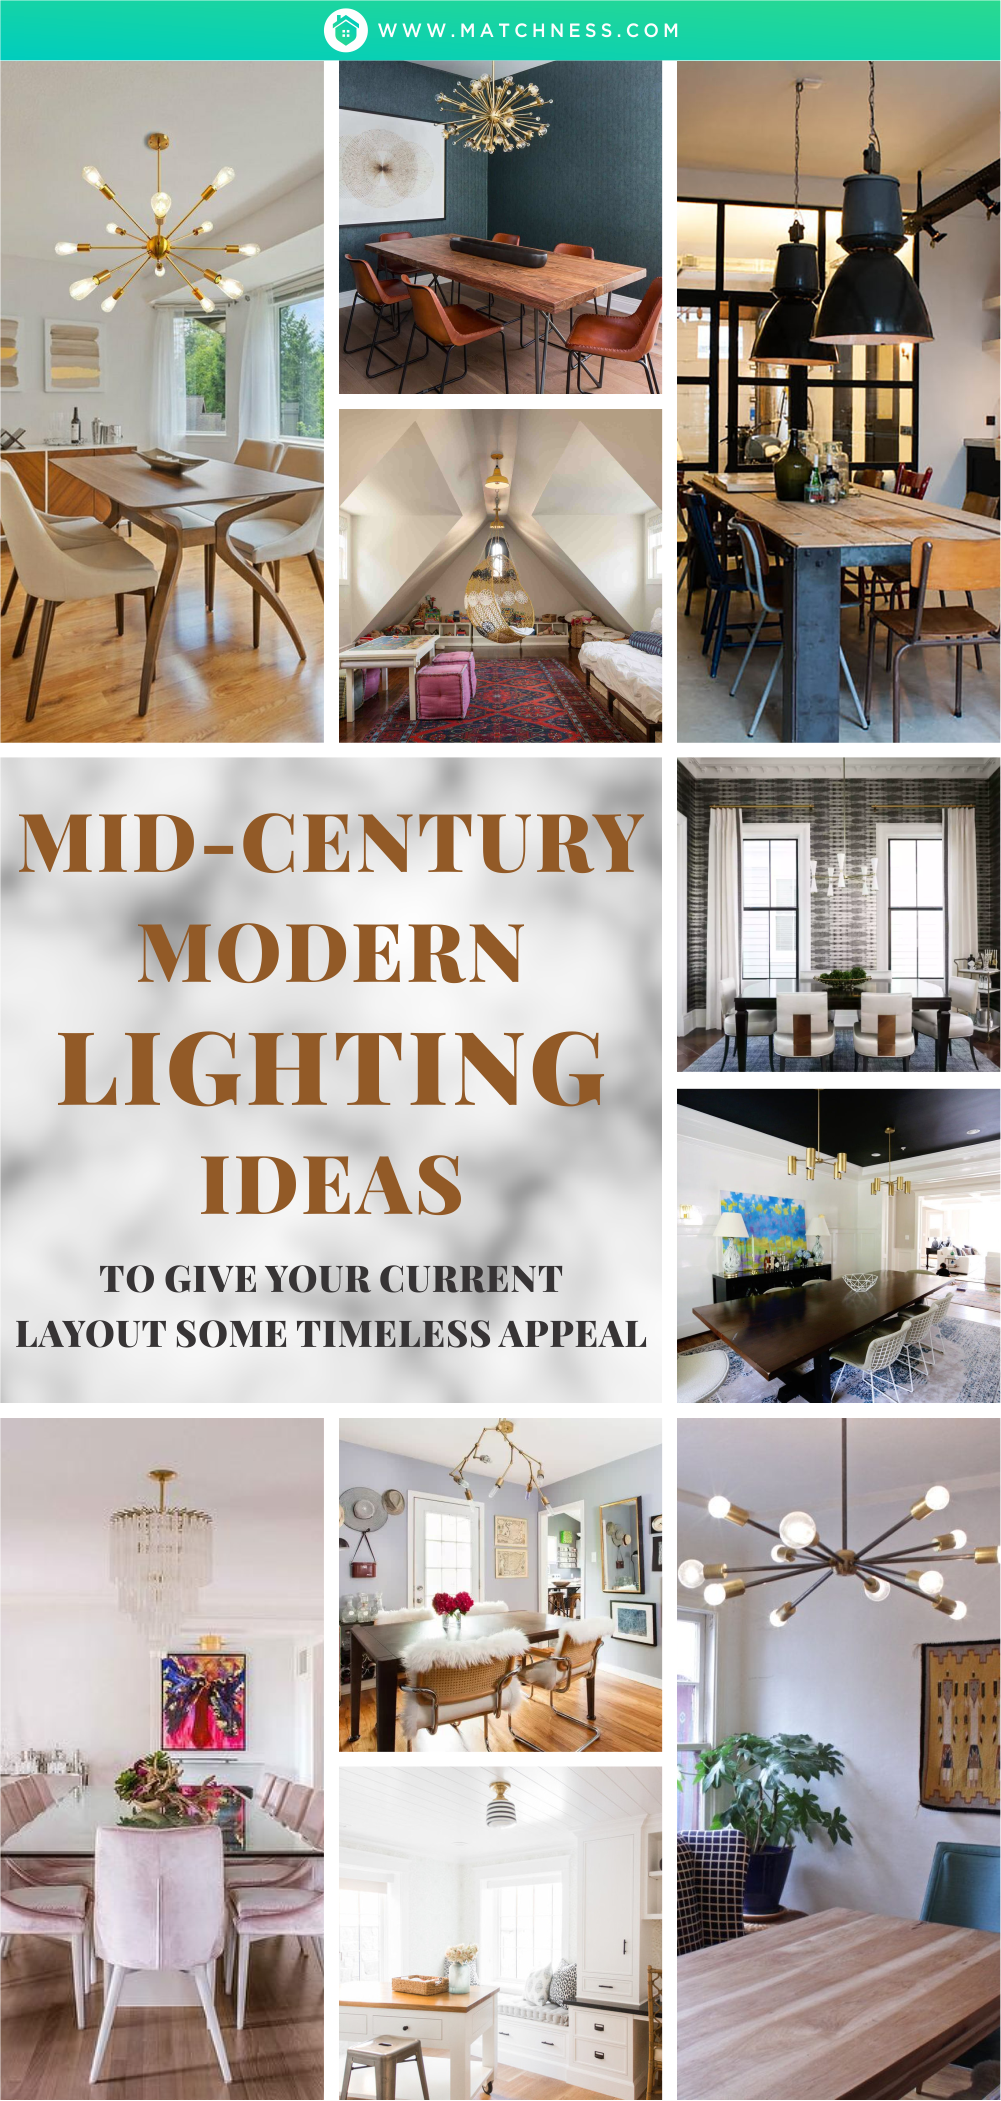 Mid-century-modern-lighting-ideas-to-give-your-current-layout-some-timeless-appeal-1